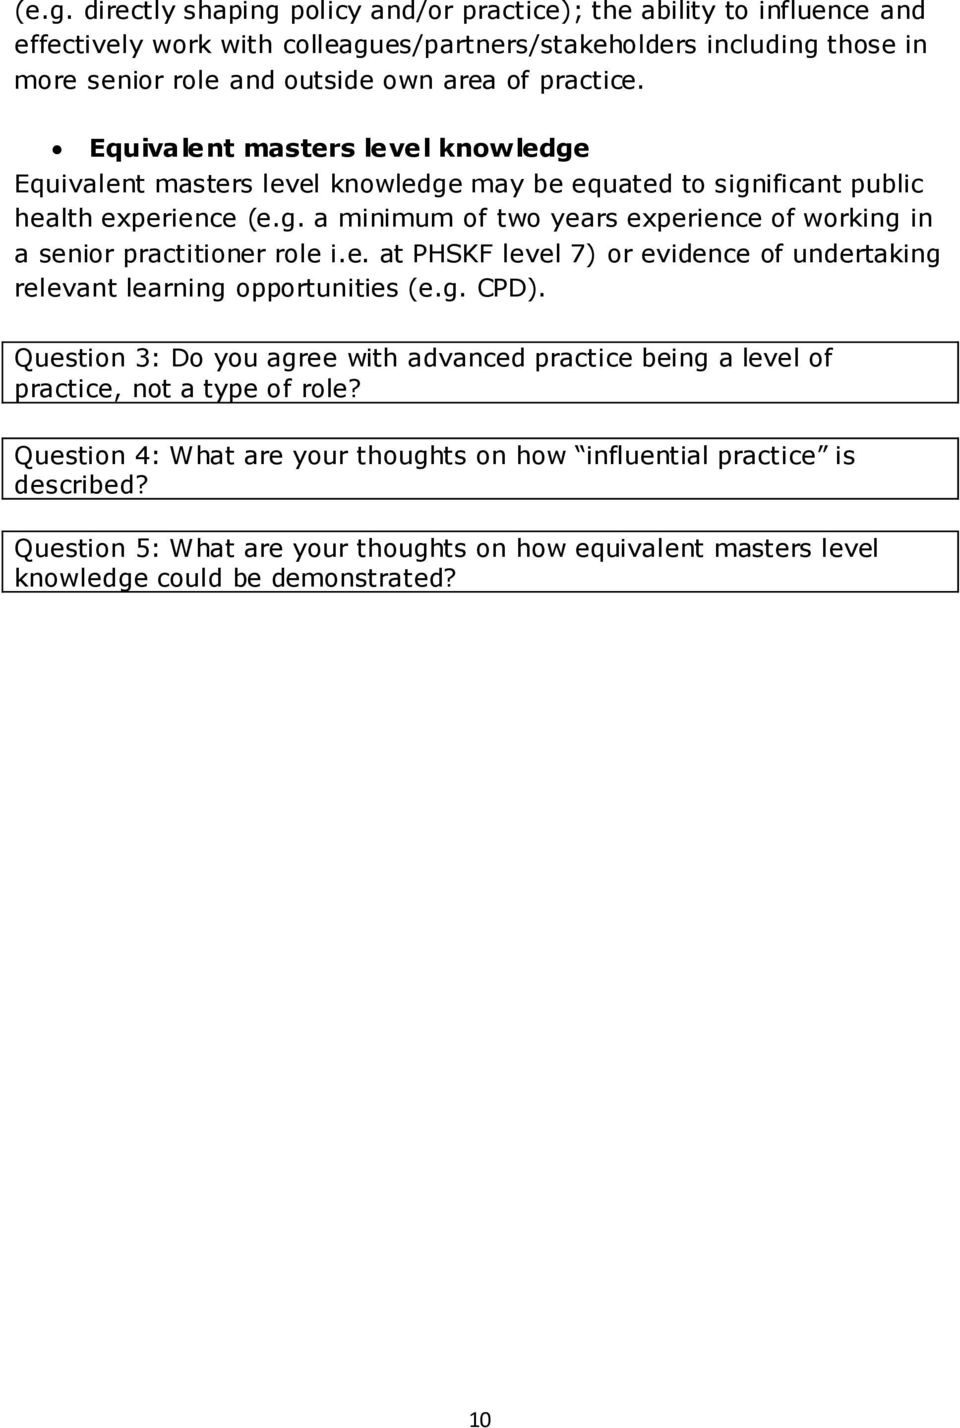 e. at PHSKF level 7) or evidence of undertaking relevant learning opportunities (e.g. CPD). Question 3: Do you agree with advanced practice being a level of practice, not a type of role?